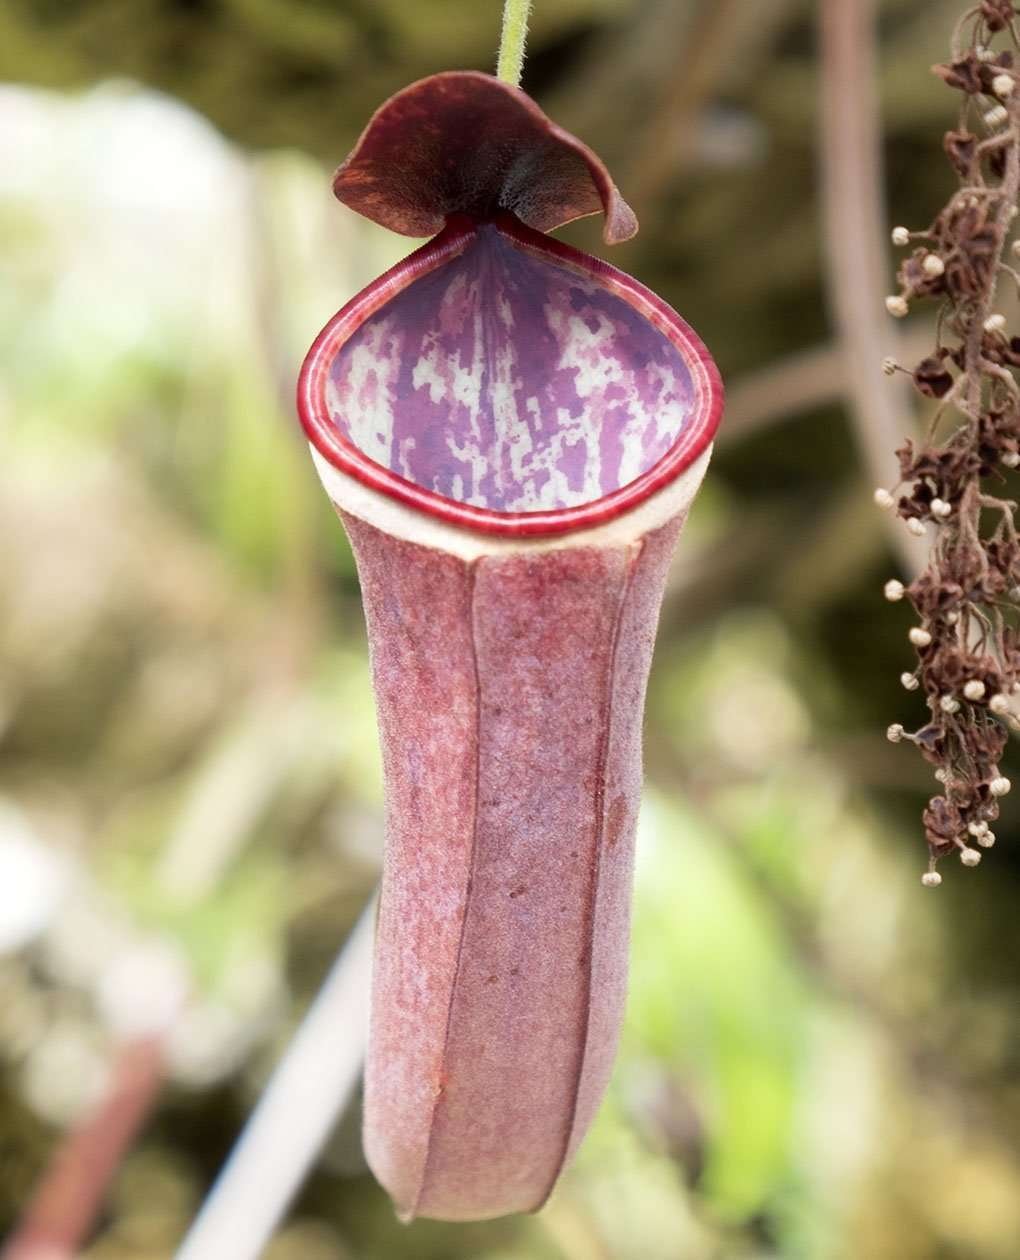 Nepenthes albomarginata pitcher